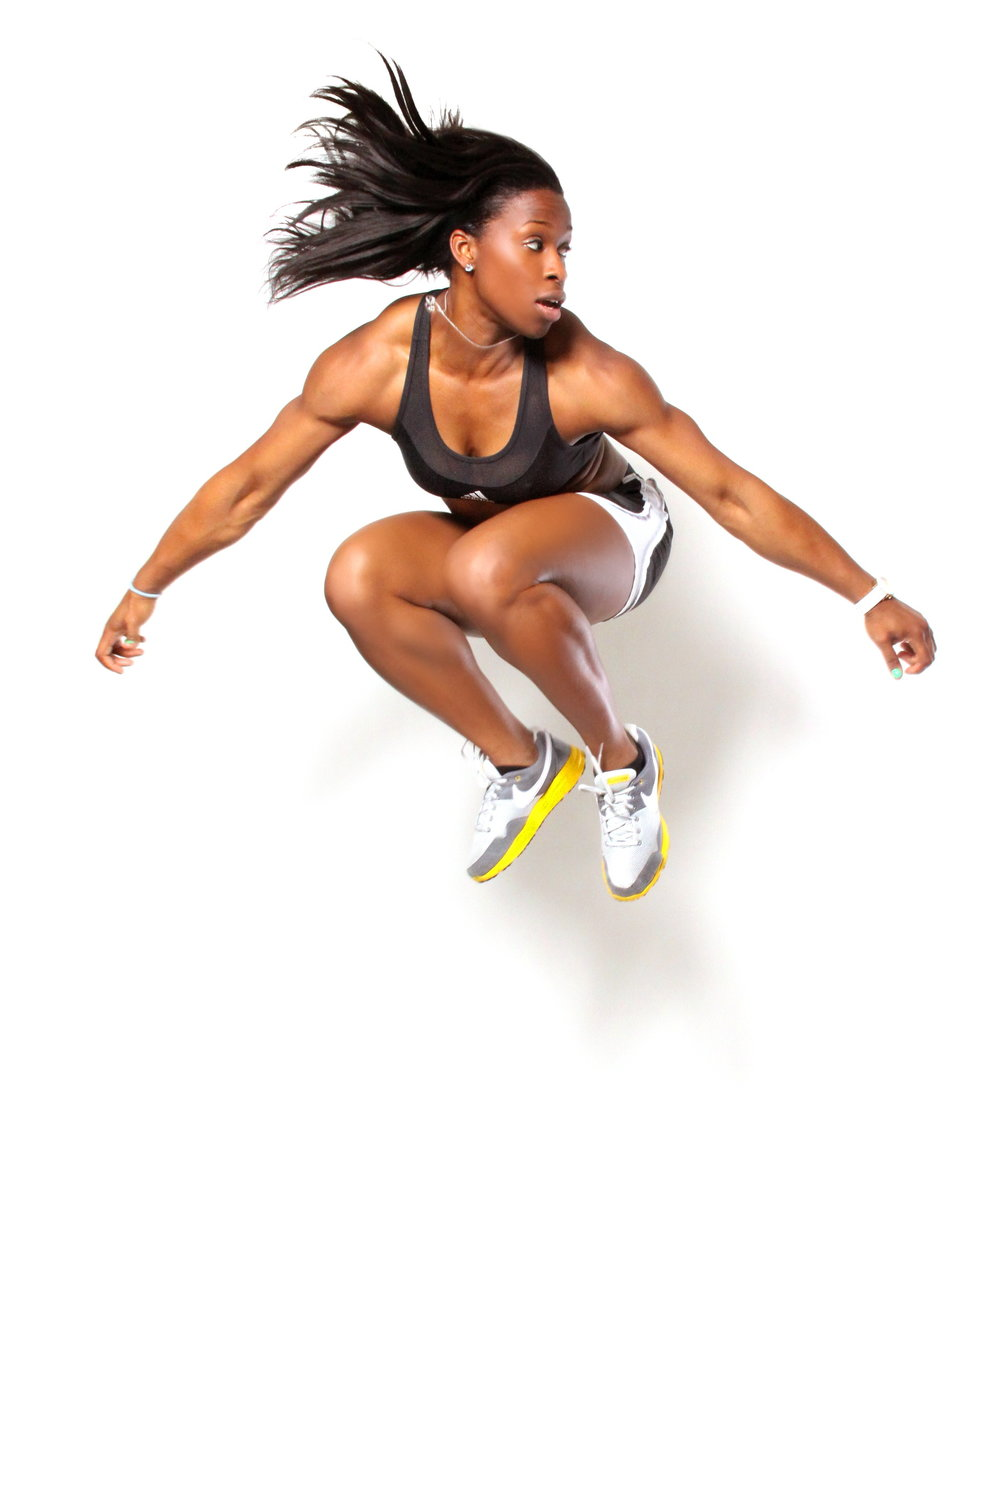 Coach Victoria Thomas 10-year volleyball coach Rutgers University OH Certified Strength and Conditioning Coach